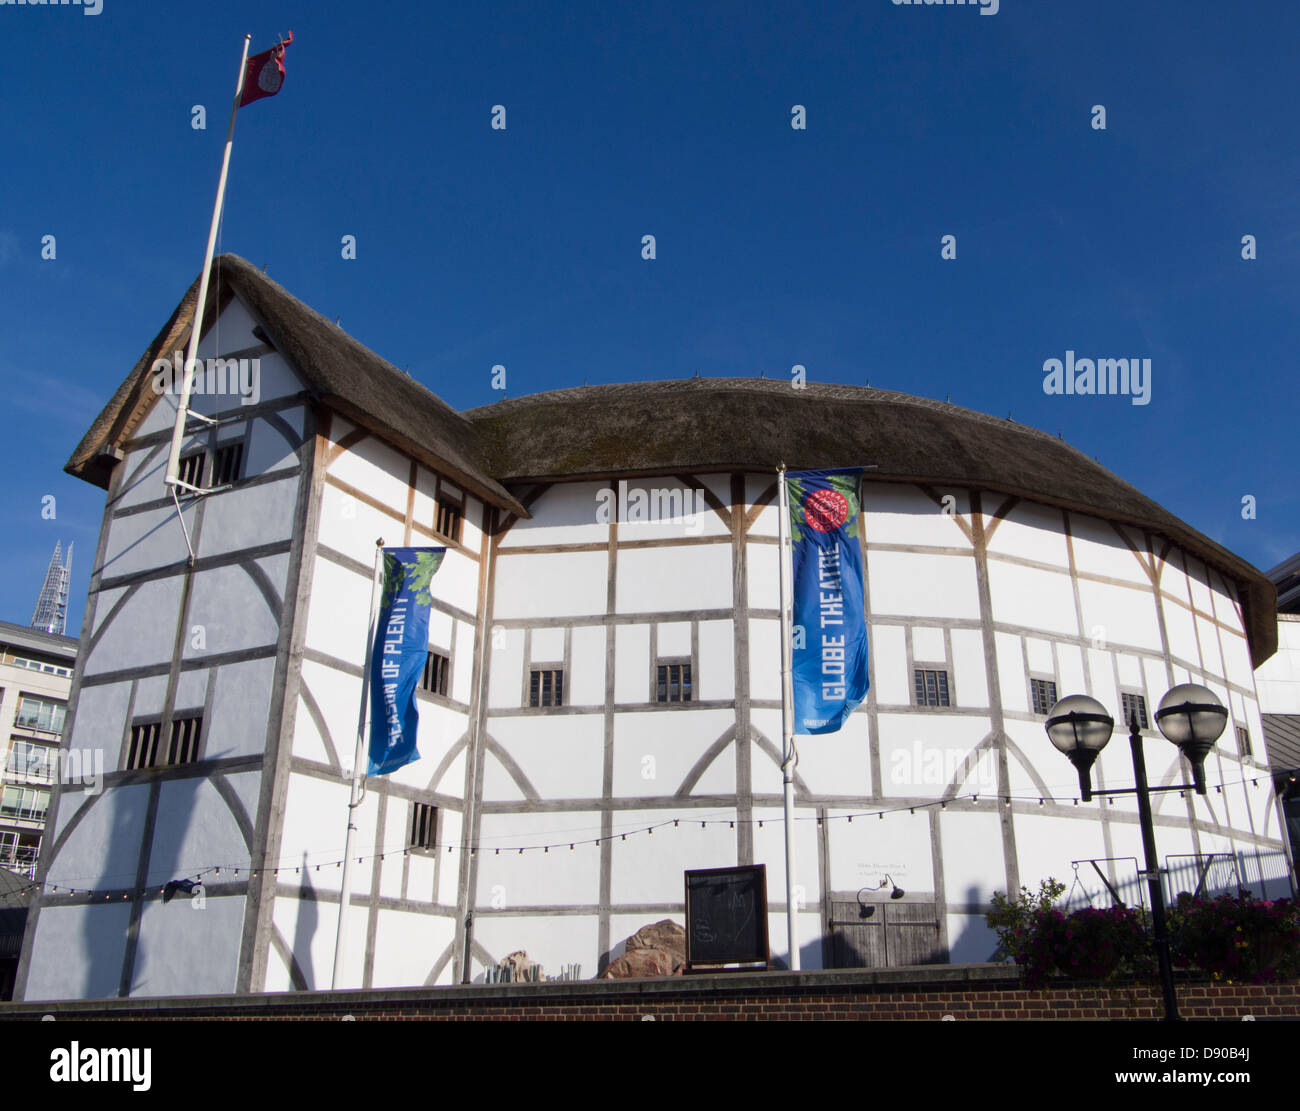 The Globe Theatre, William Shakespeare's theatre, on the south bank of the Thames, London, UK - Stock Image